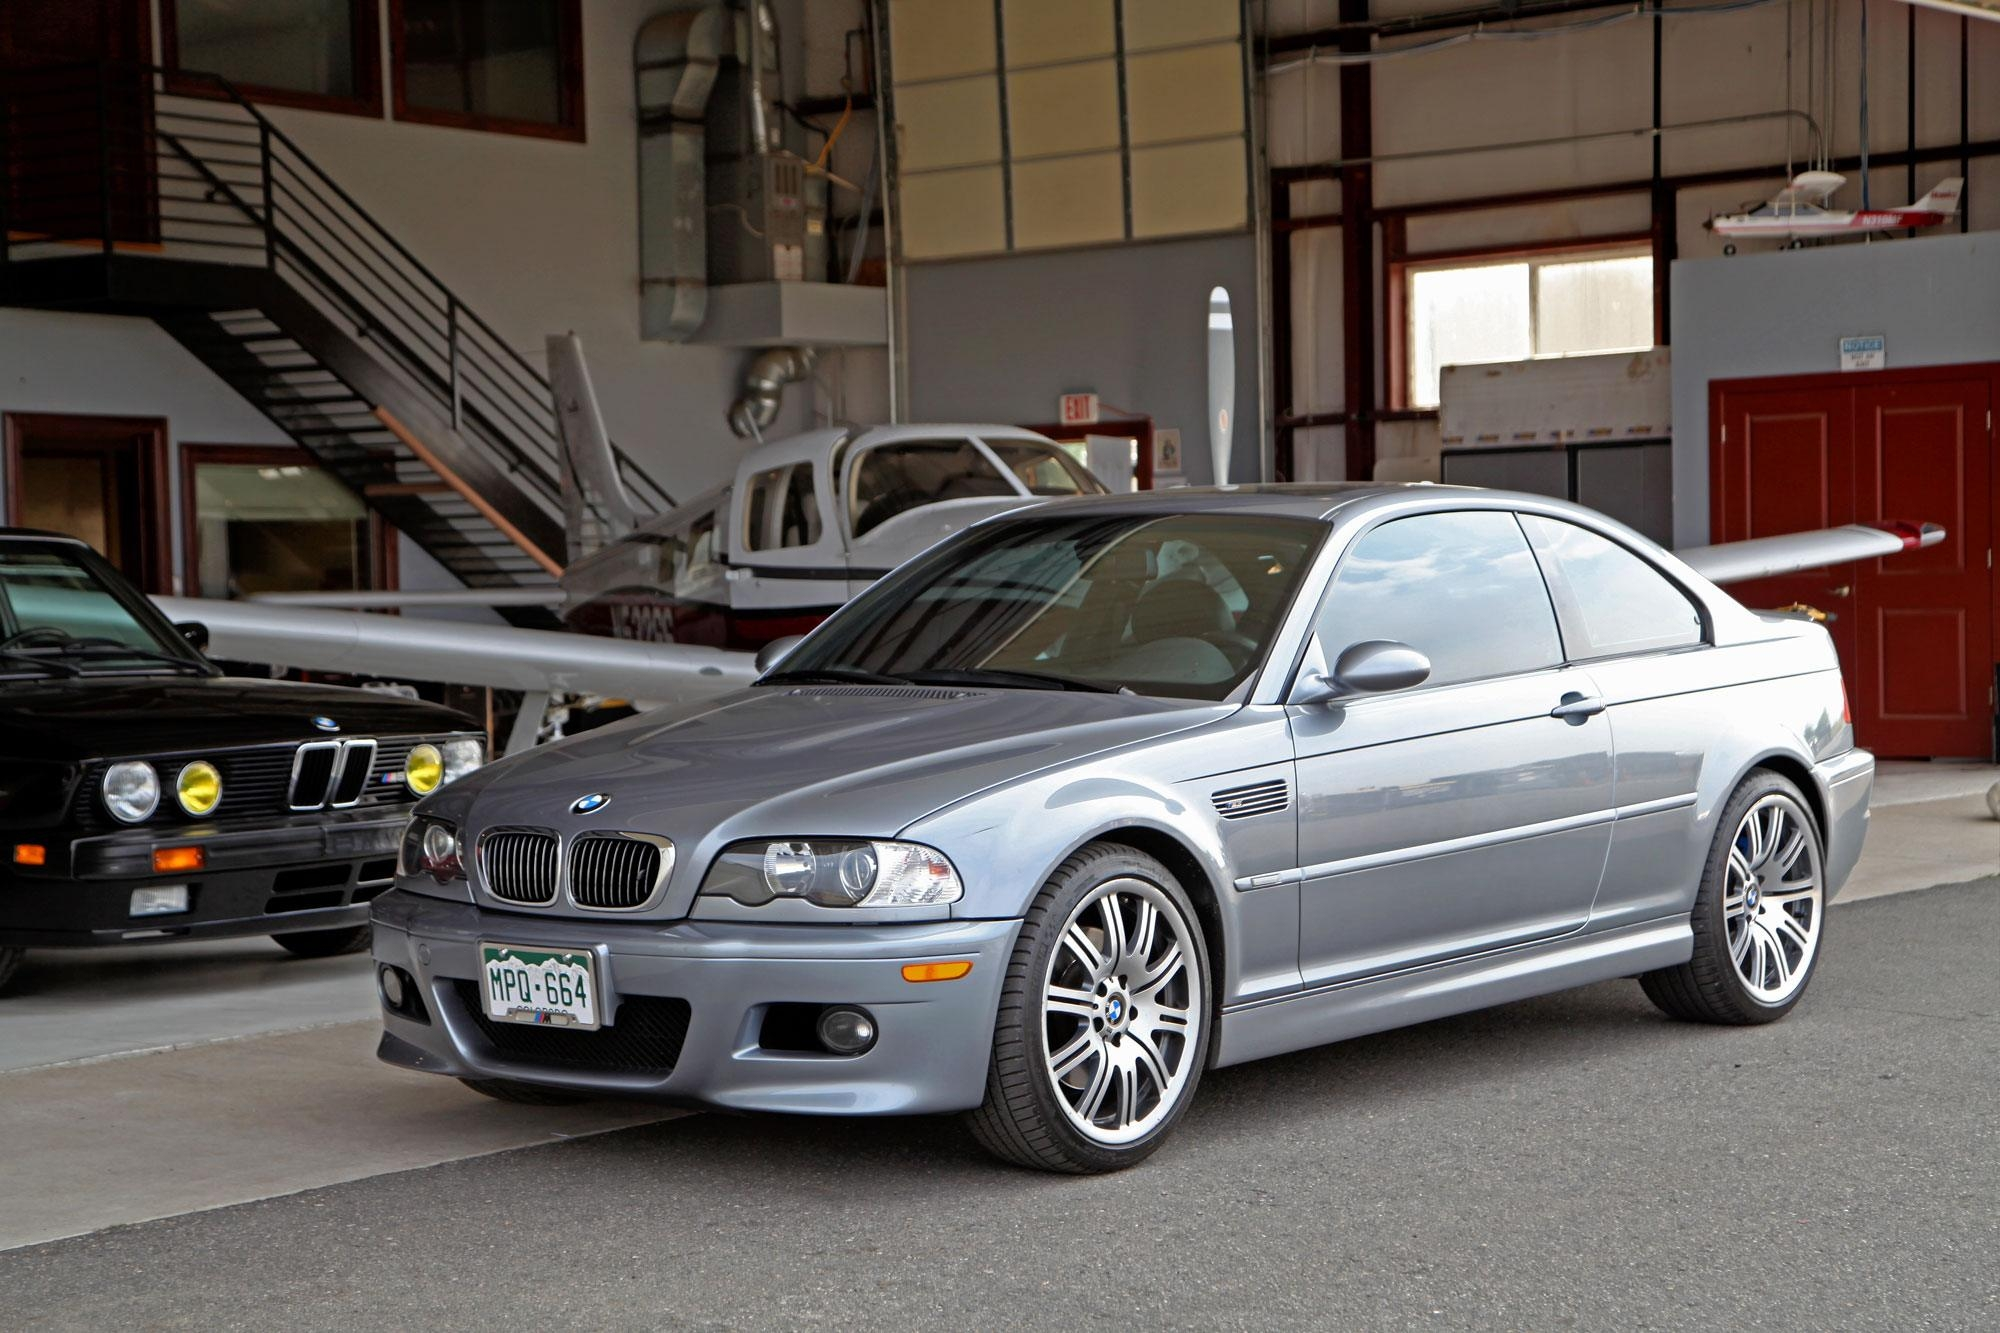 2004 bmw e46 m3 coupe glen shelly auto brokers denver colorado. Black Bedroom Furniture Sets. Home Design Ideas